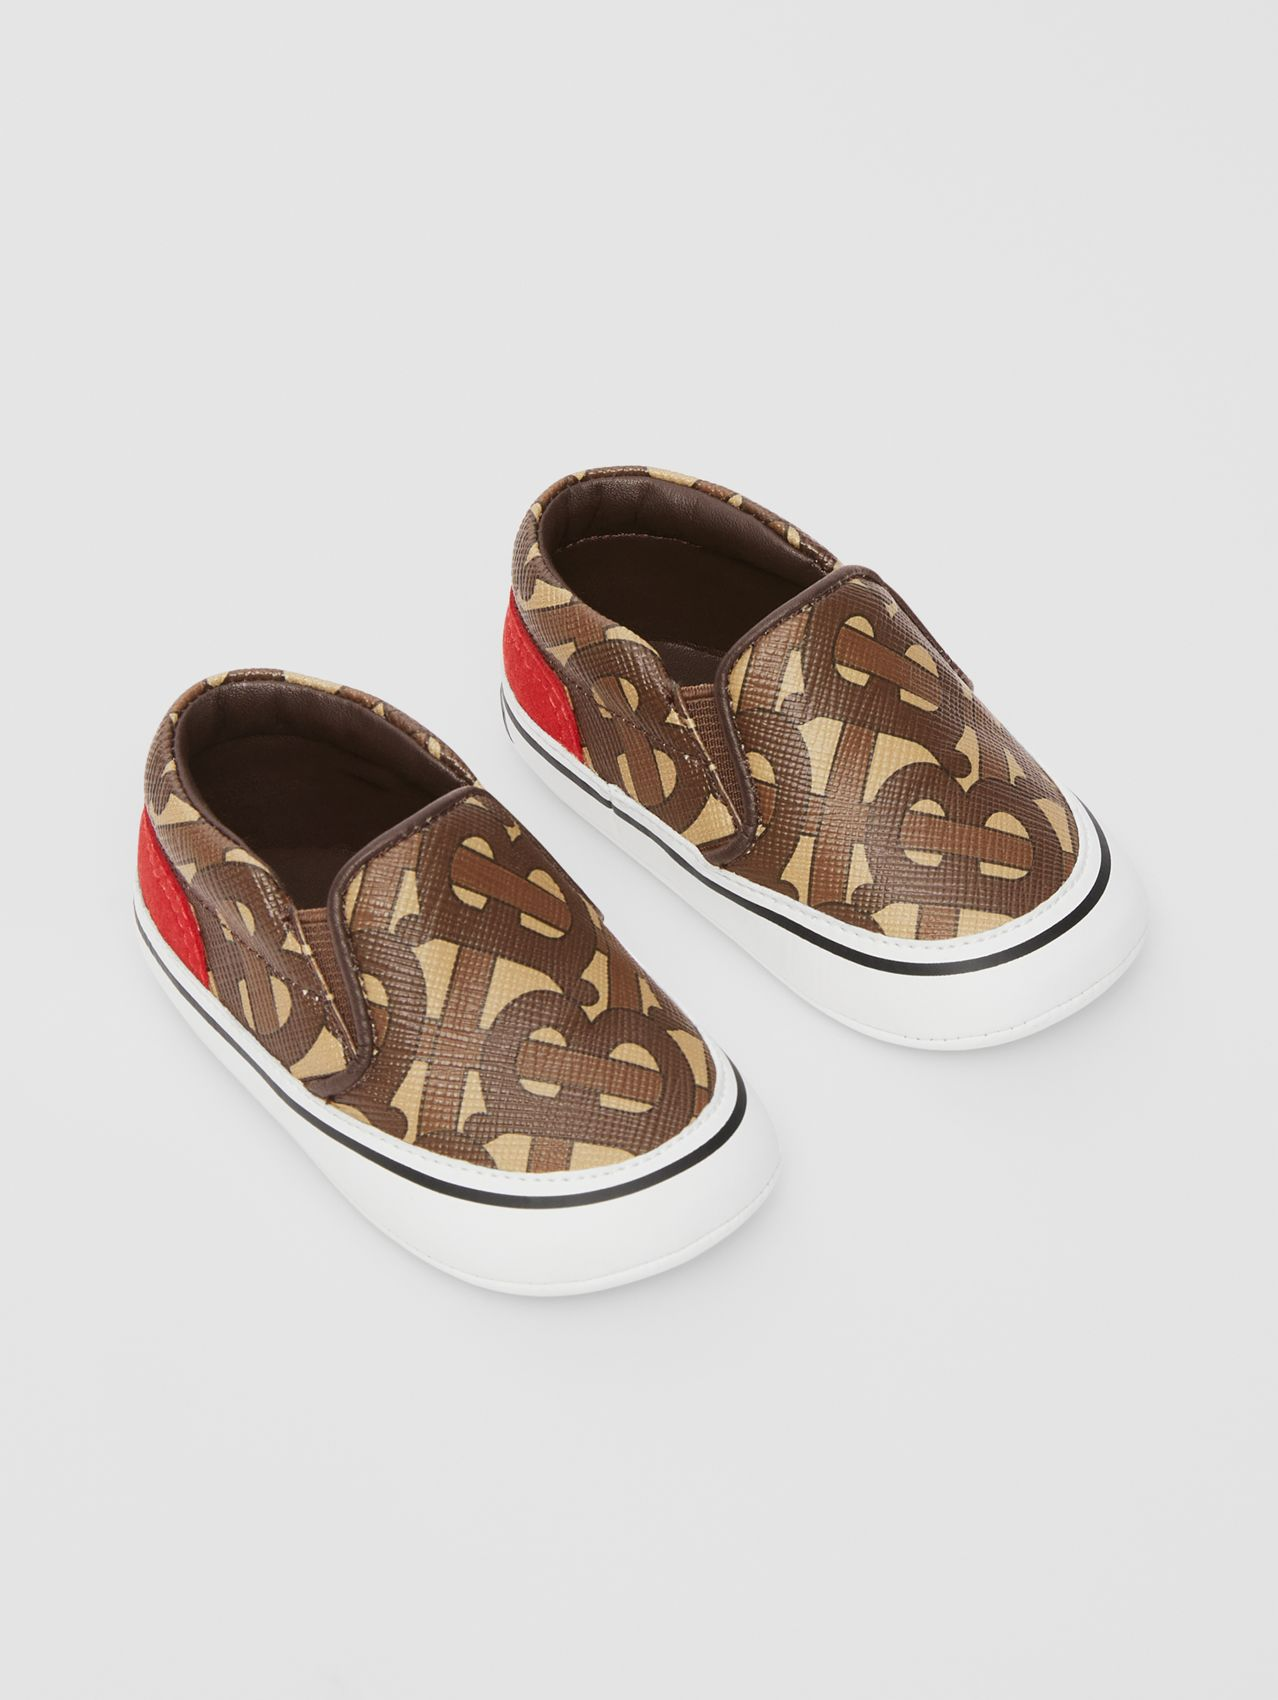 Monogram Print E-canvas Slip-on Shoes in Bridle Brown